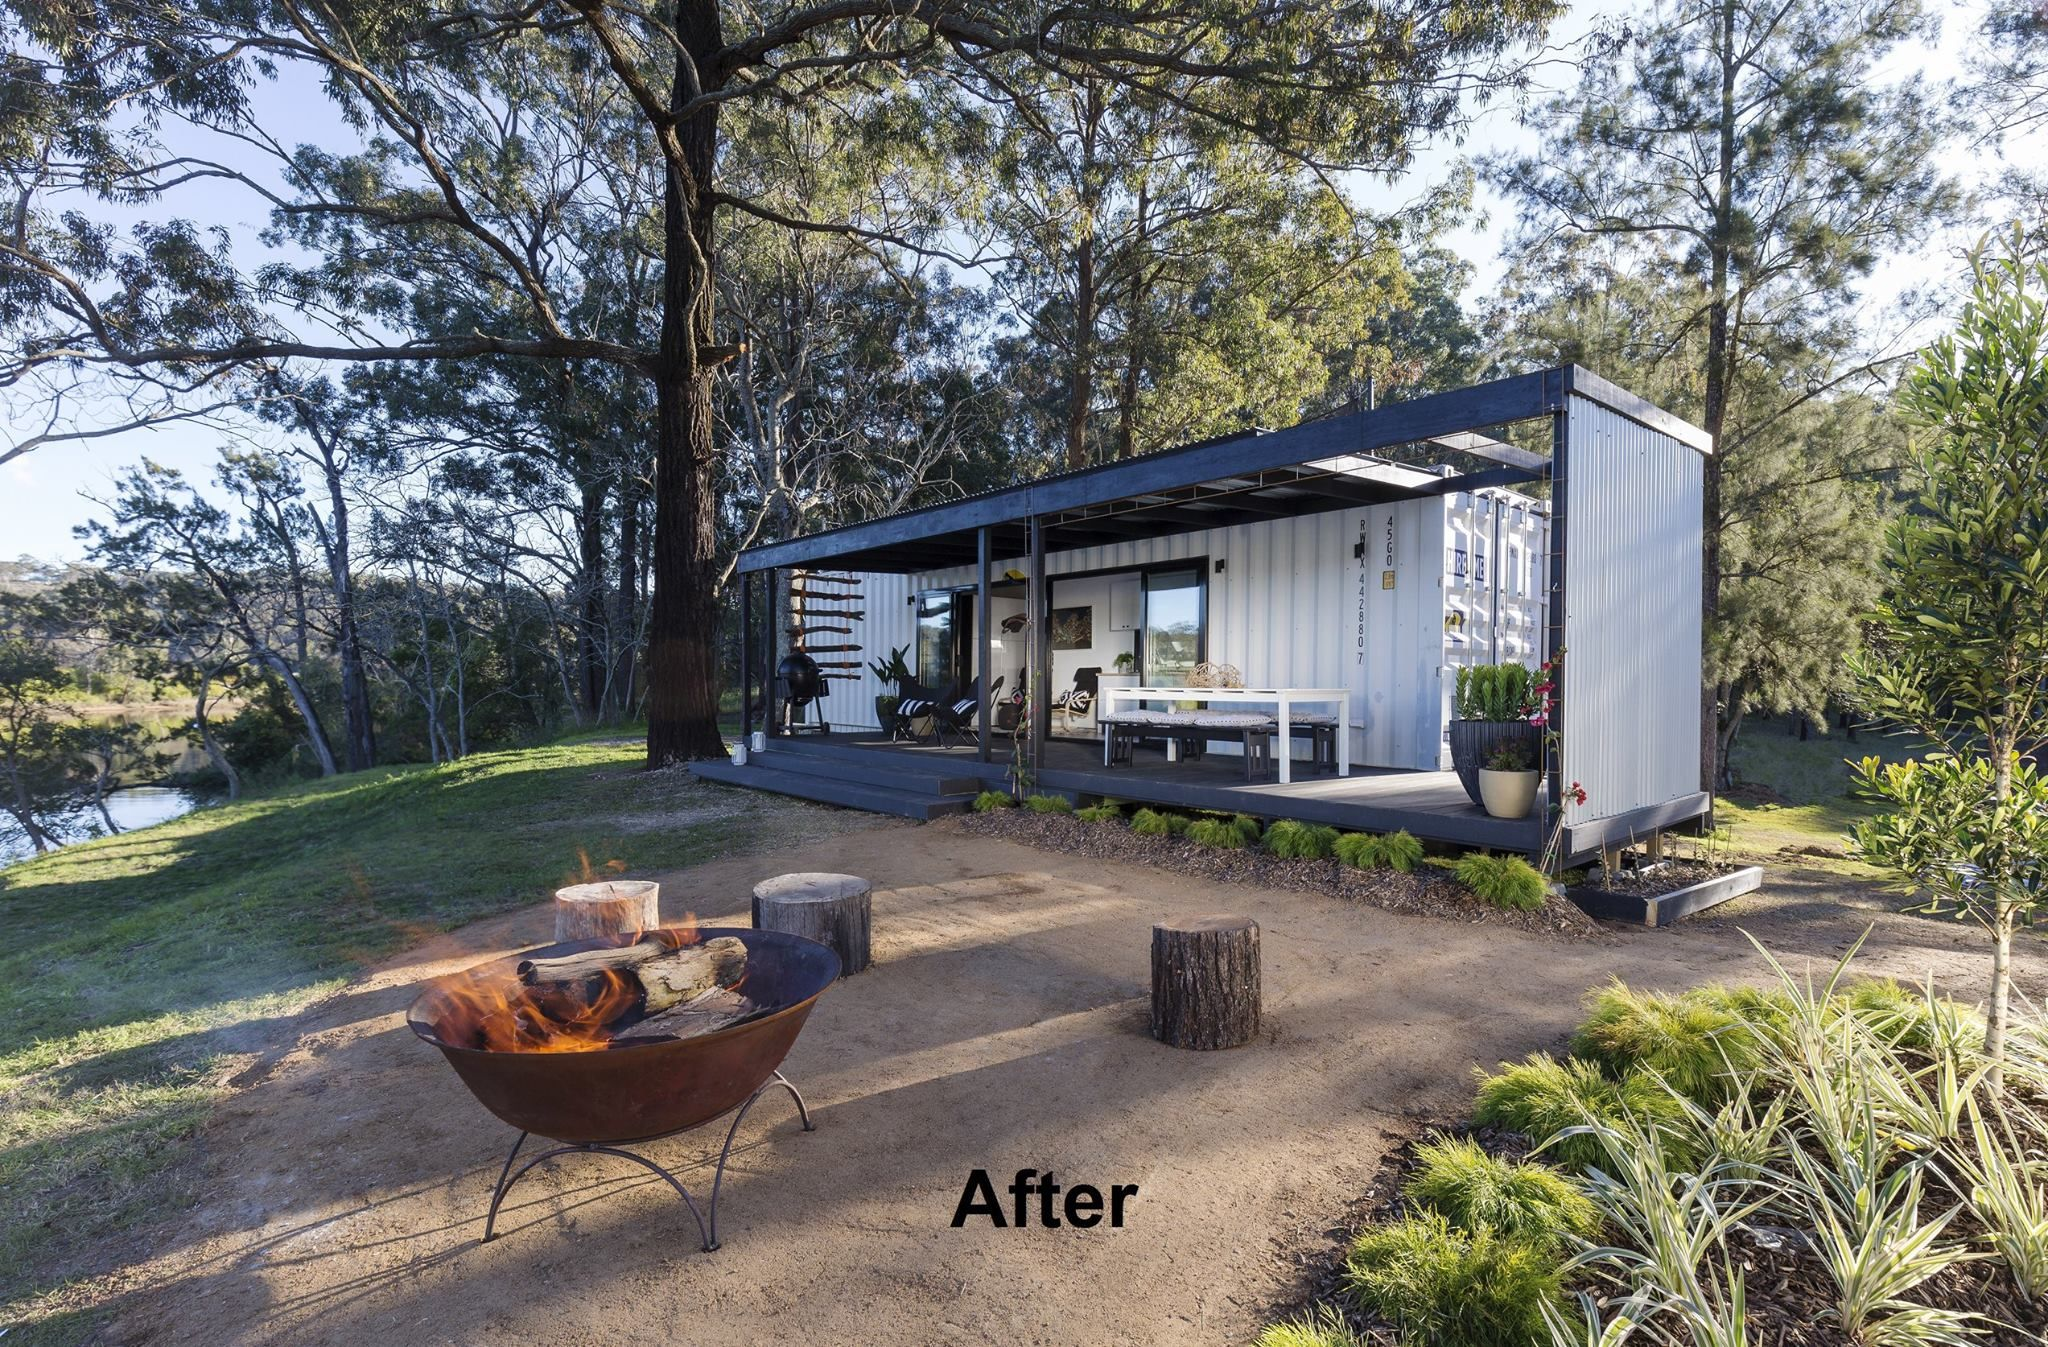 Best Kitchen Gallery: Pin By Freddie K On Sea Can Homes Pinterest Ships Tiny Houses of Shipping Container Homes Australia  on rachelxblog.com